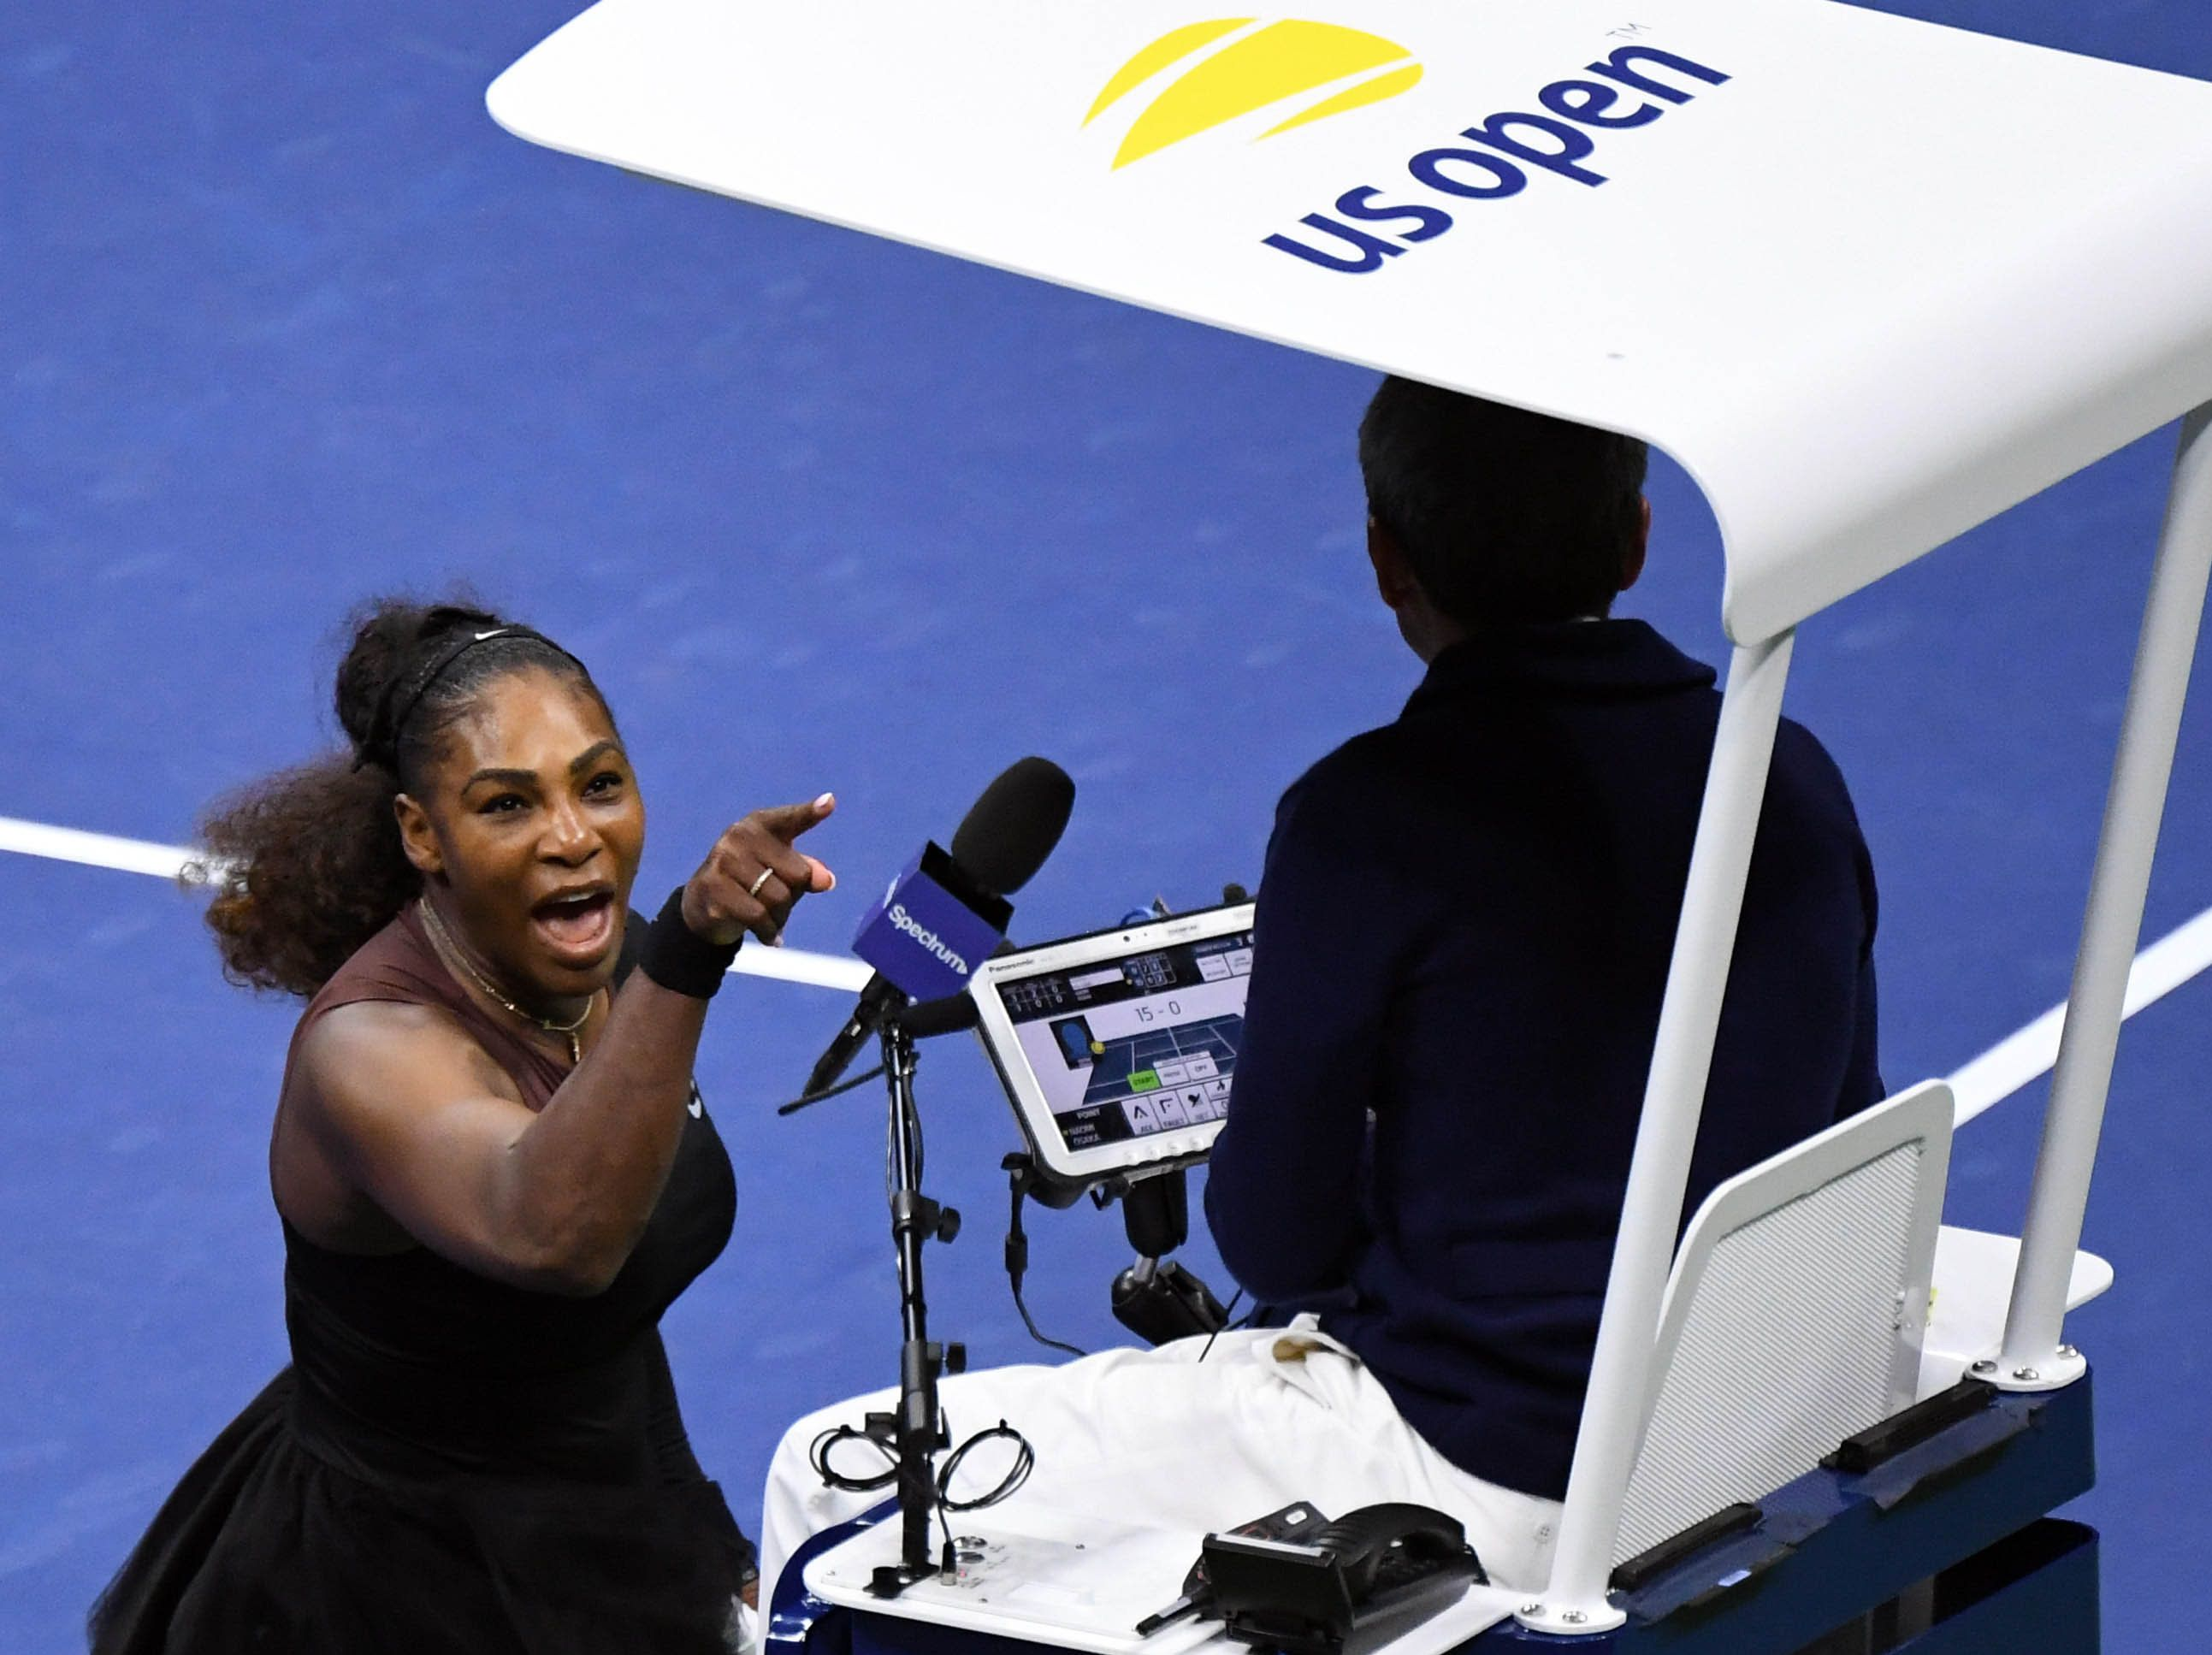 US Open Umpire Makes First Public Statement